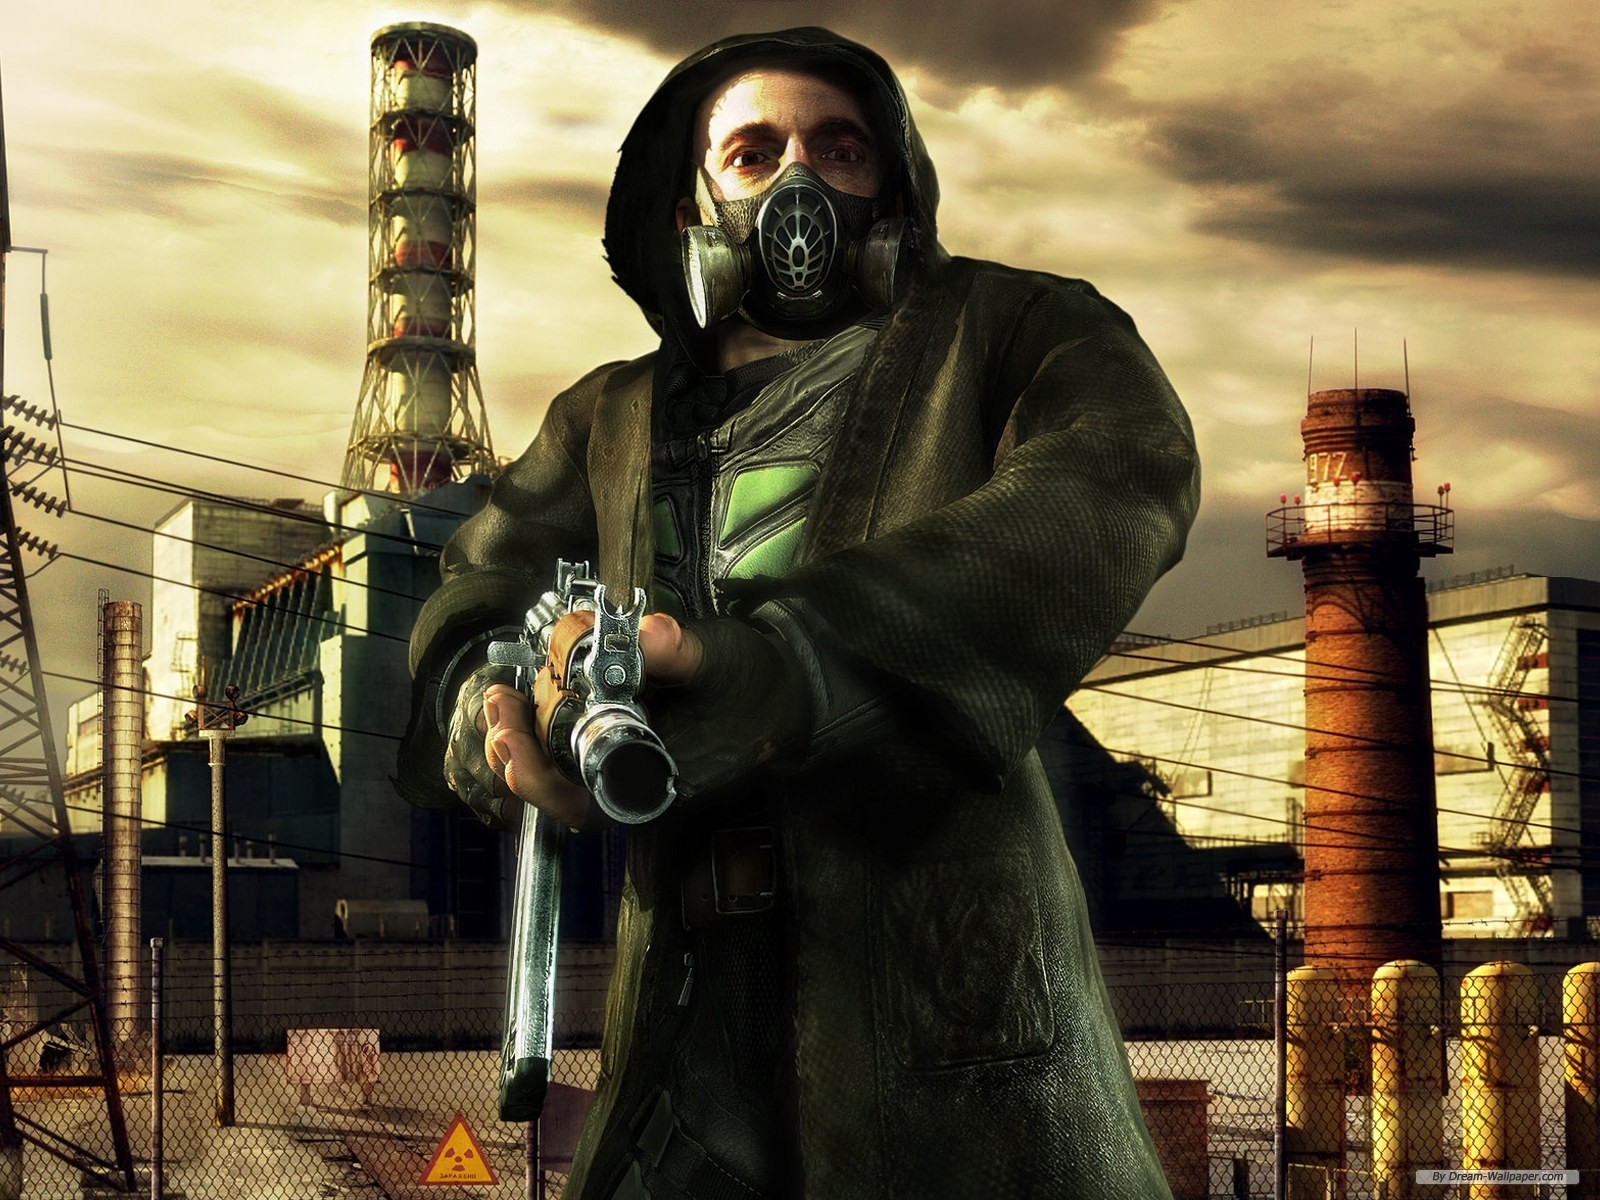 Free Game Wallpaper Stalker Shadow Of Chernobyl Gas Mask